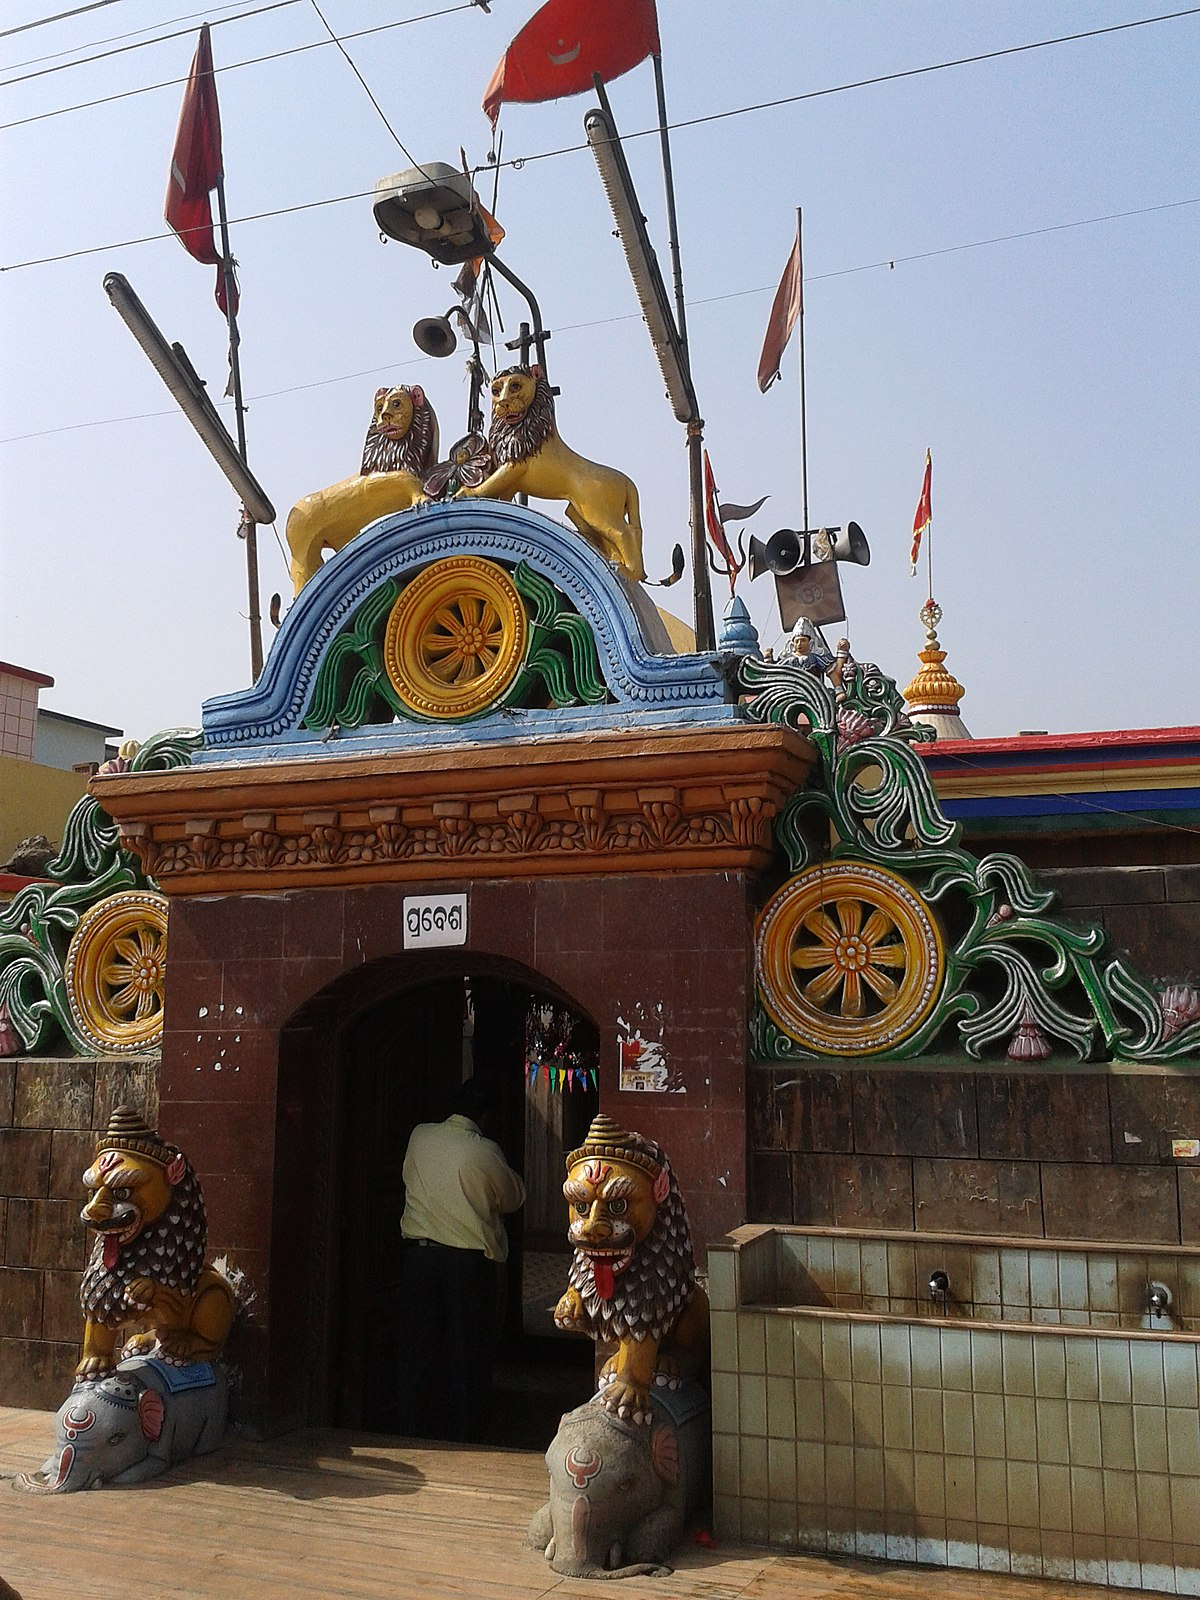 katak Chandi Temple - What Does The Day Tours Of Cuttack Cover